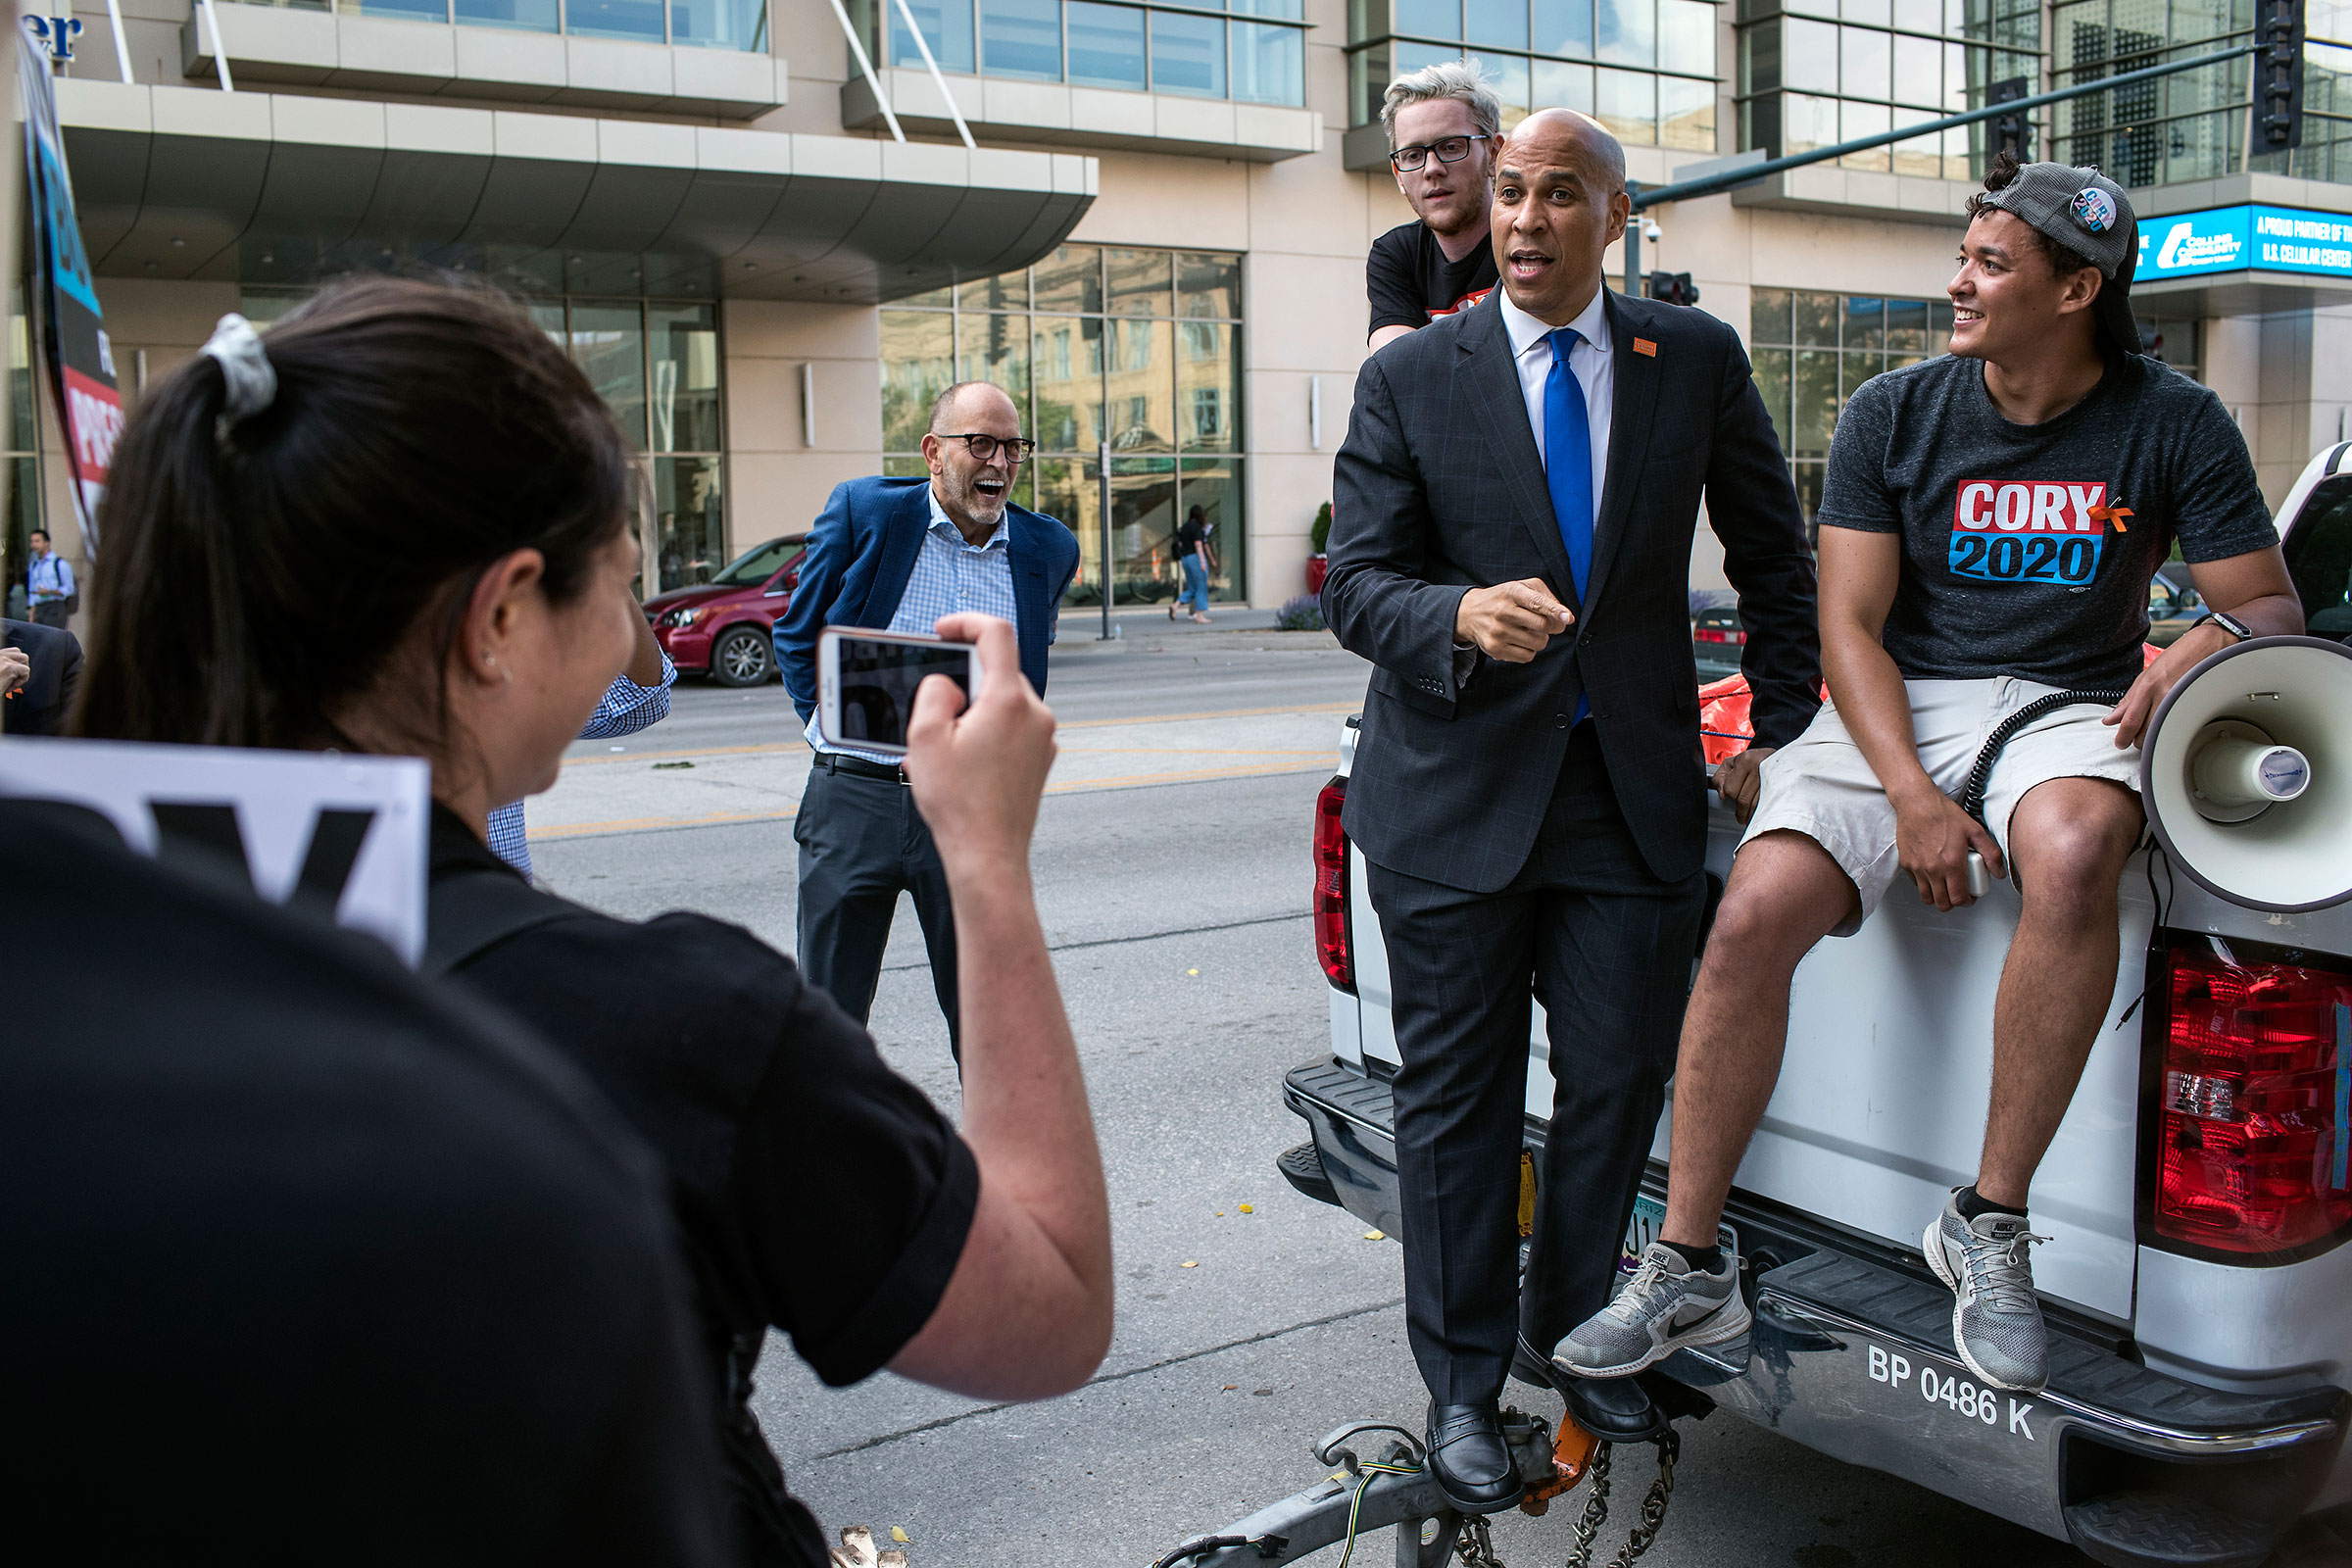 Booker speaks with supporters after the Democratic Hall of Fame event in Cedar Rapids, Iowa on June 9.